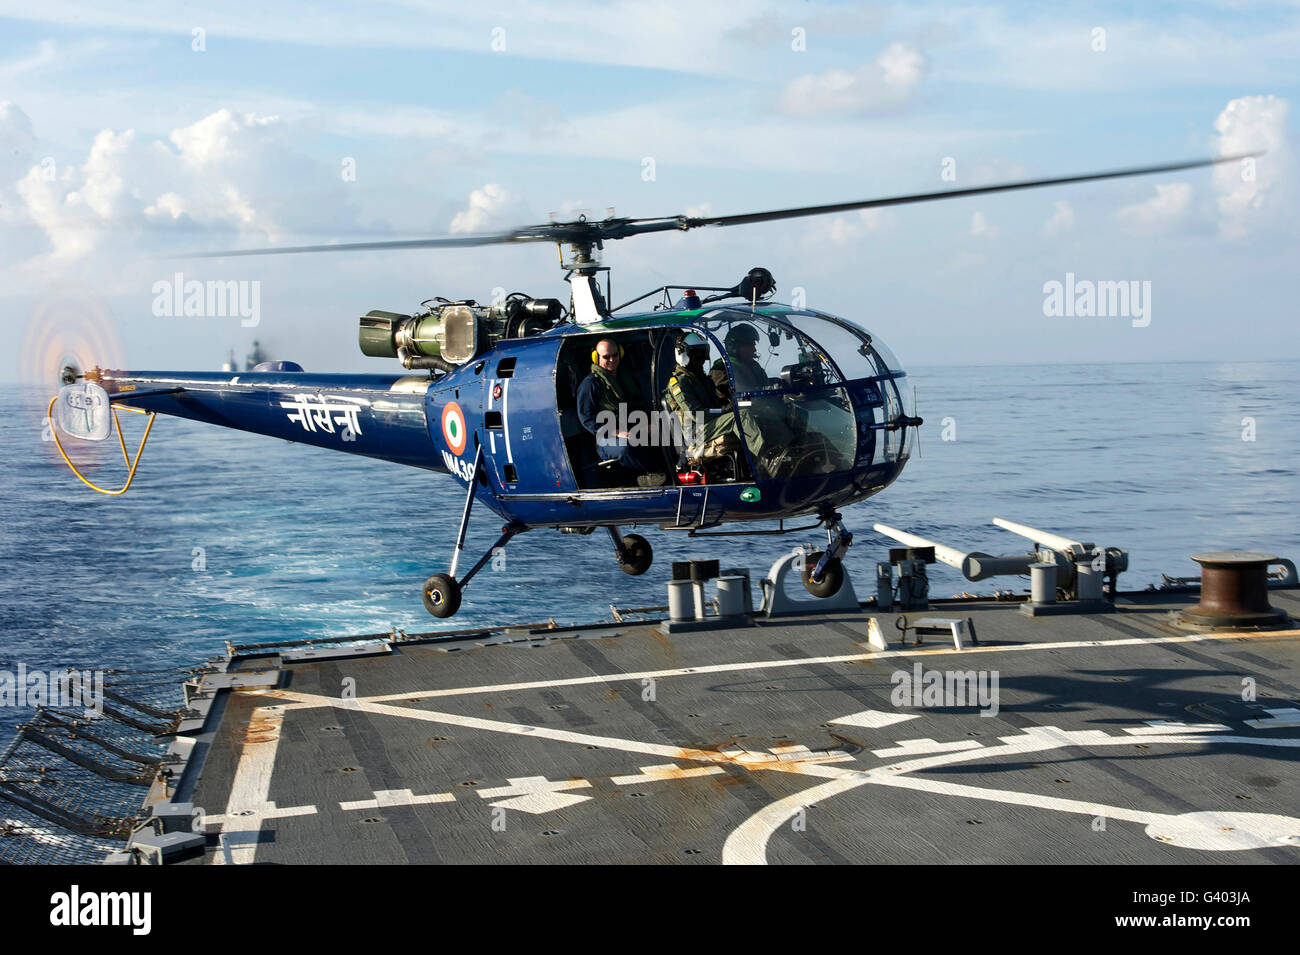 An Indian Navy helicopter  lands on the flight deck of USS John S. McCain. - Stock Image